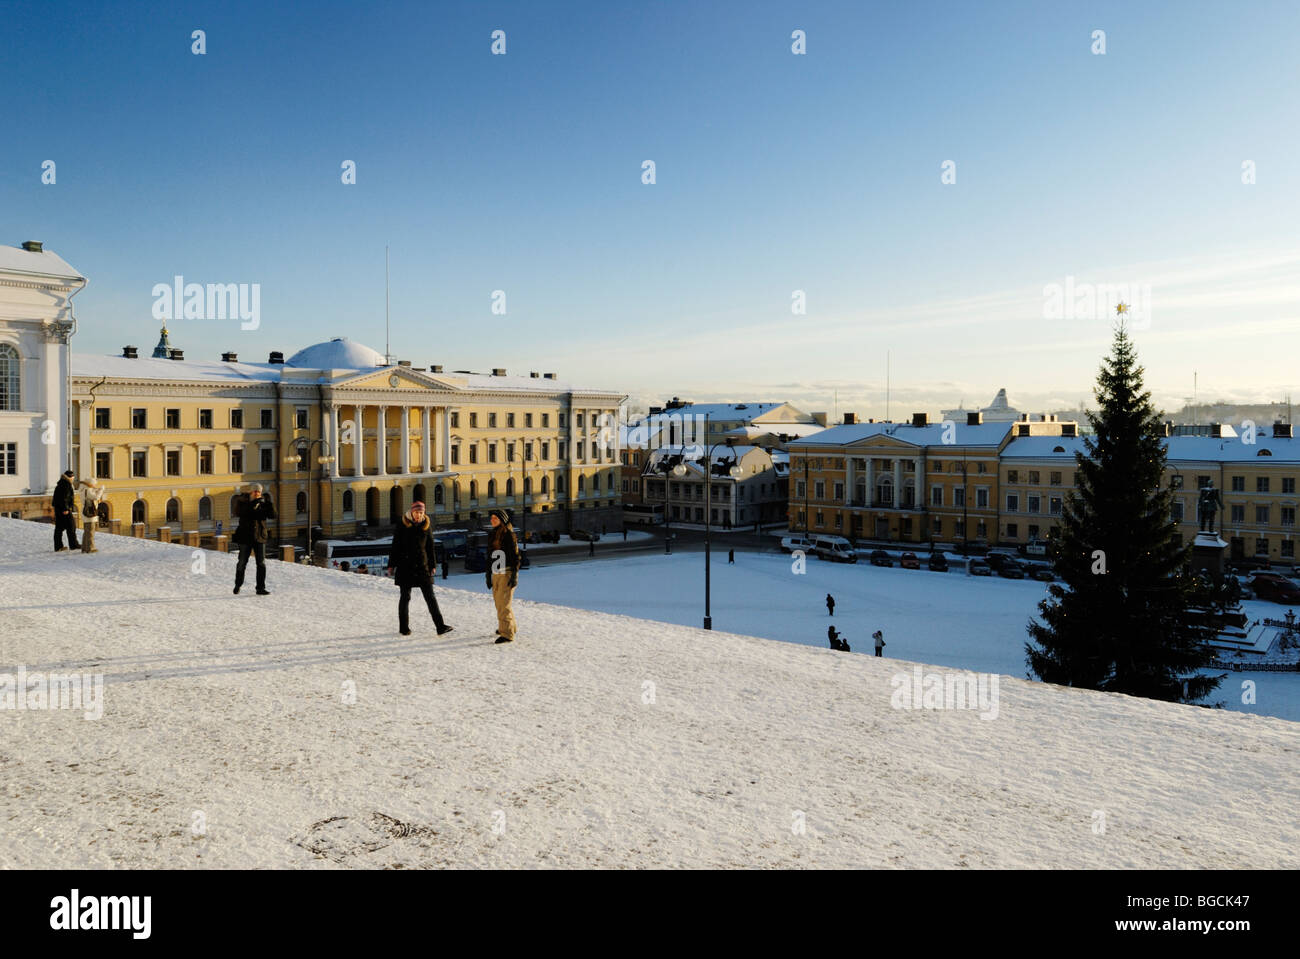 View from the Lutheran Cathedral towards the Senate Square in central Helsinki, Finland - Stock Image